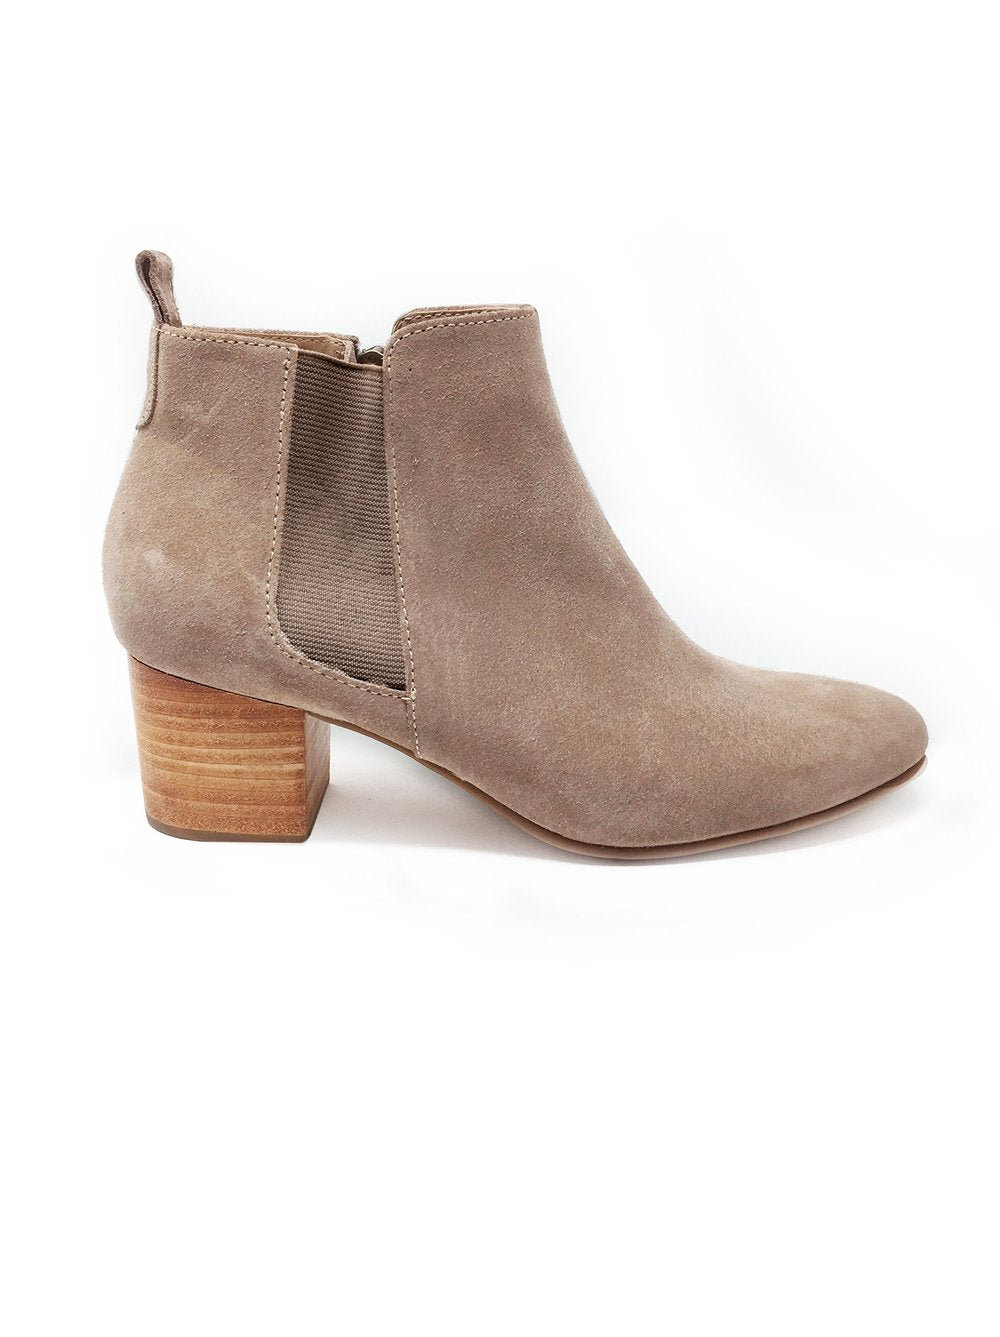 Diana_Chelsea_Boots_ash_suede_2048x2048.jpg